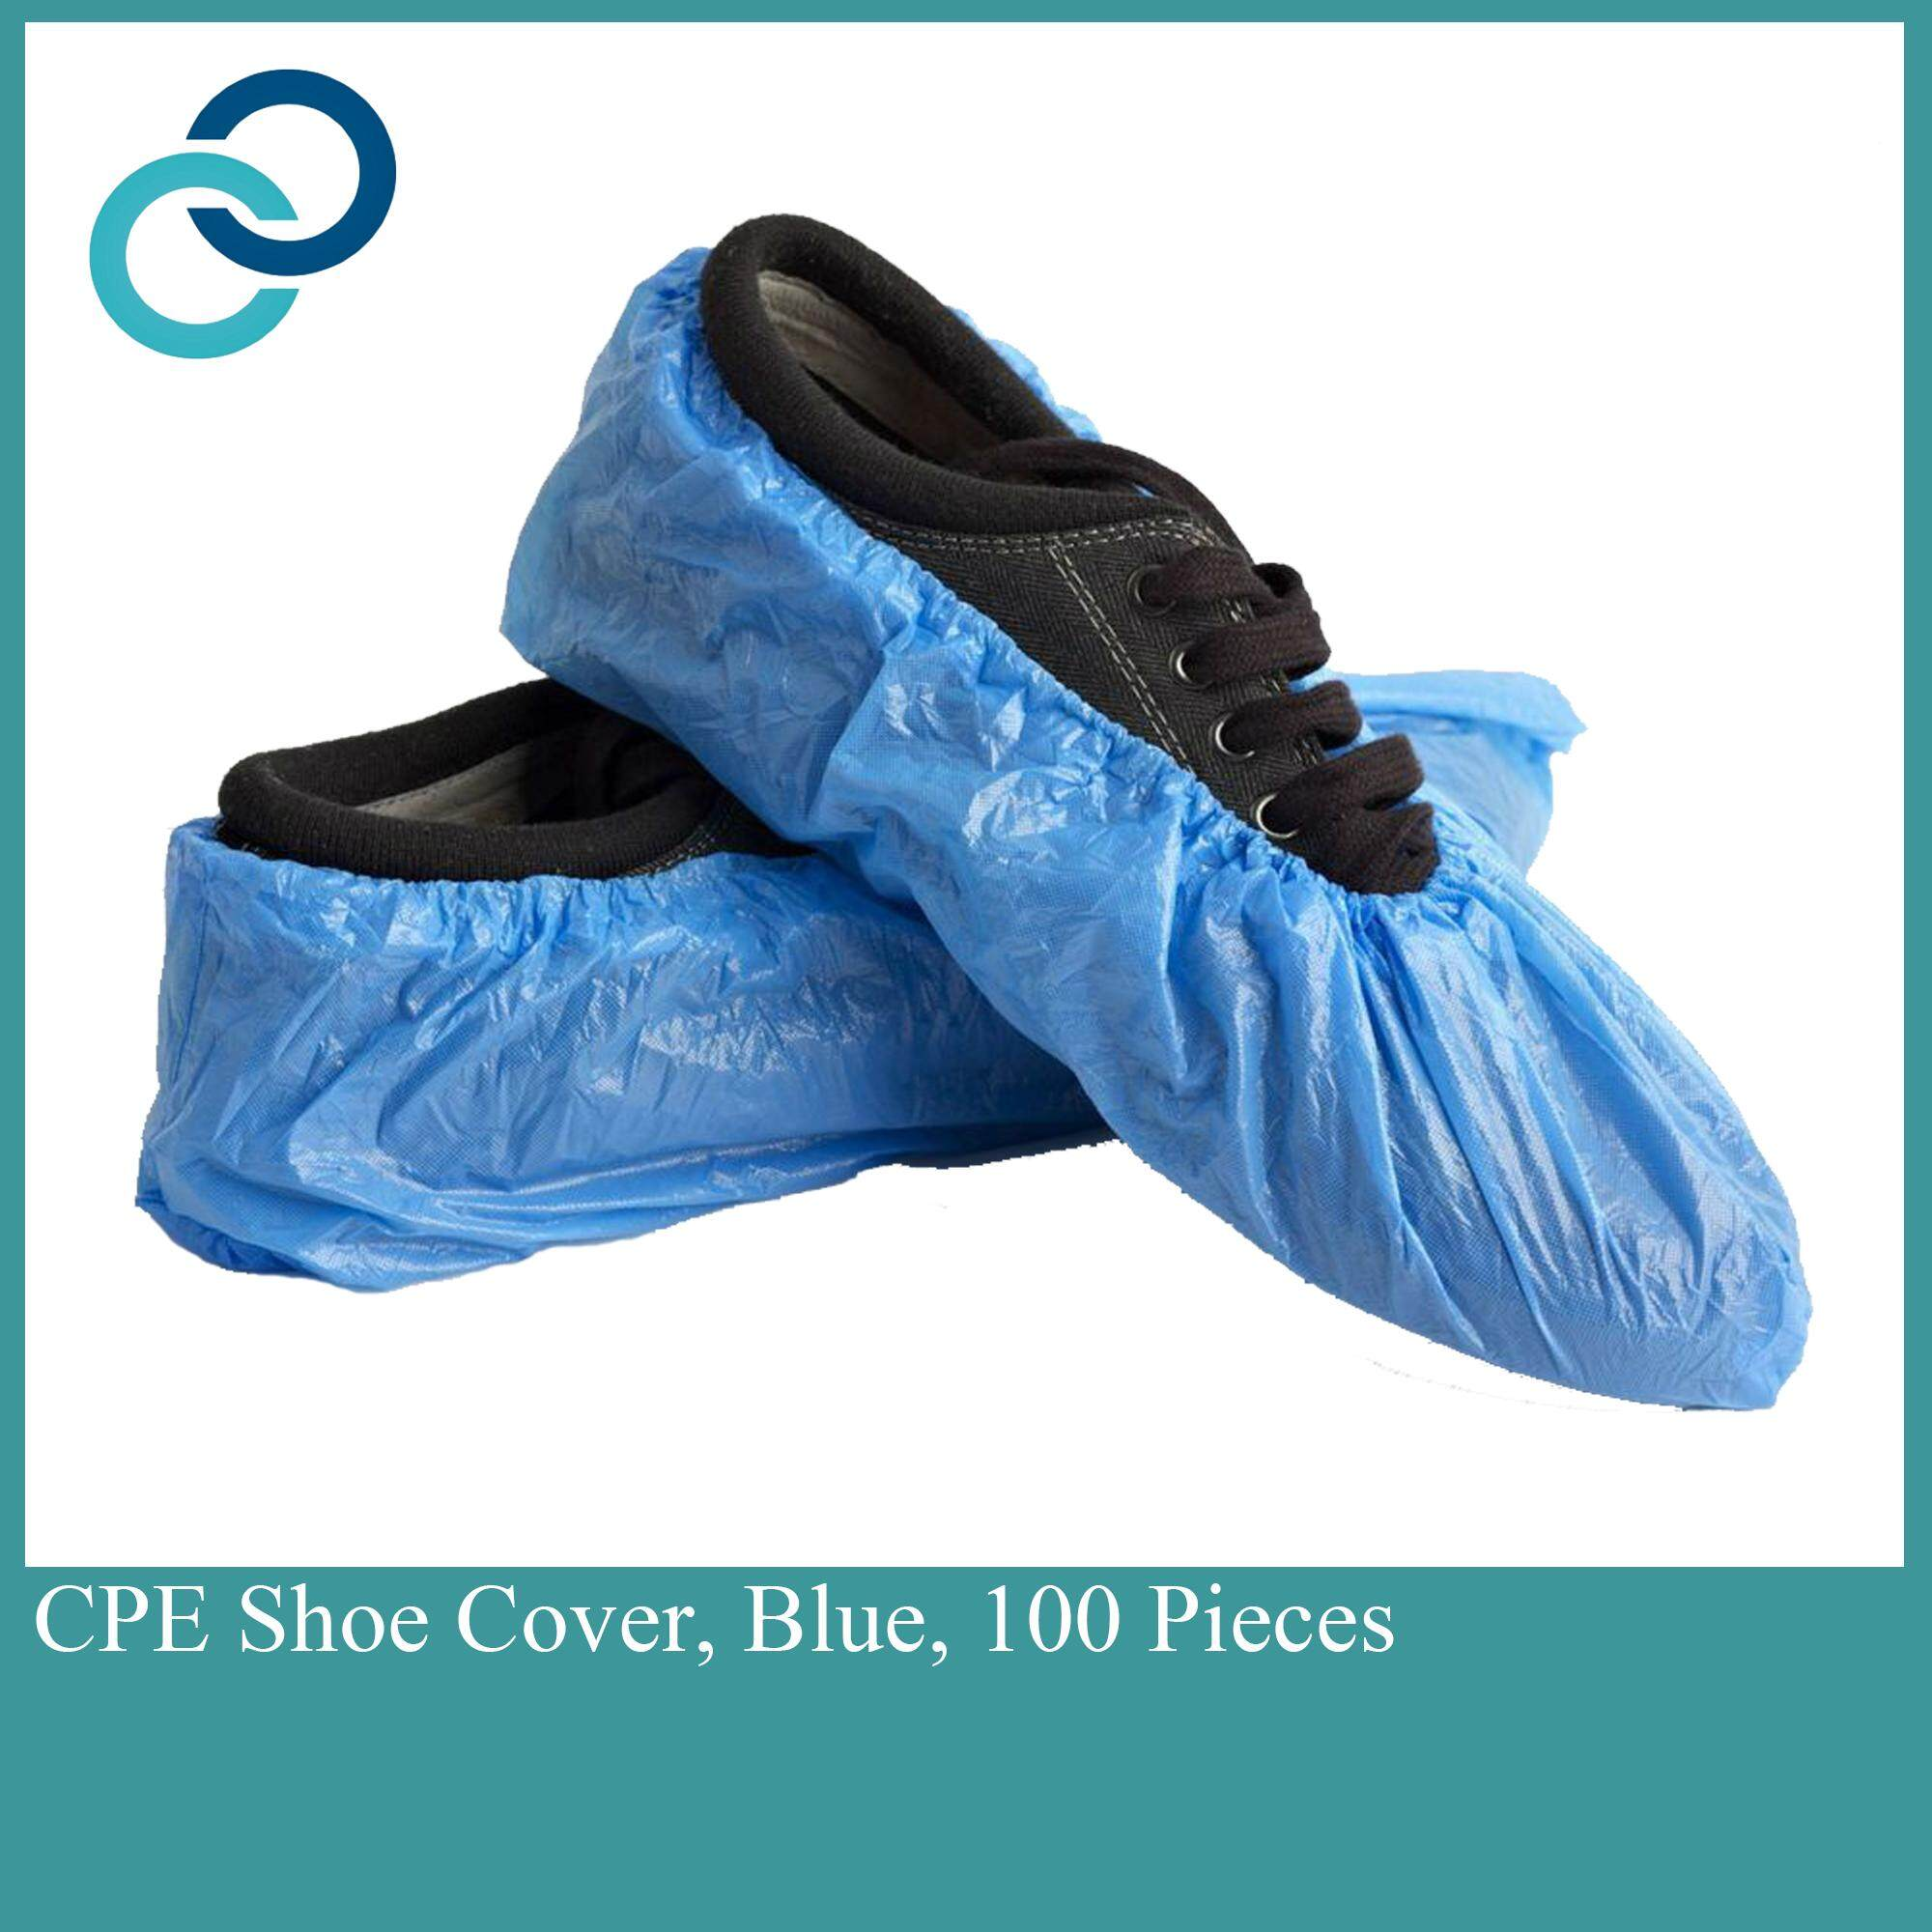 CPE Shoe Cover Blue 100 Pieces